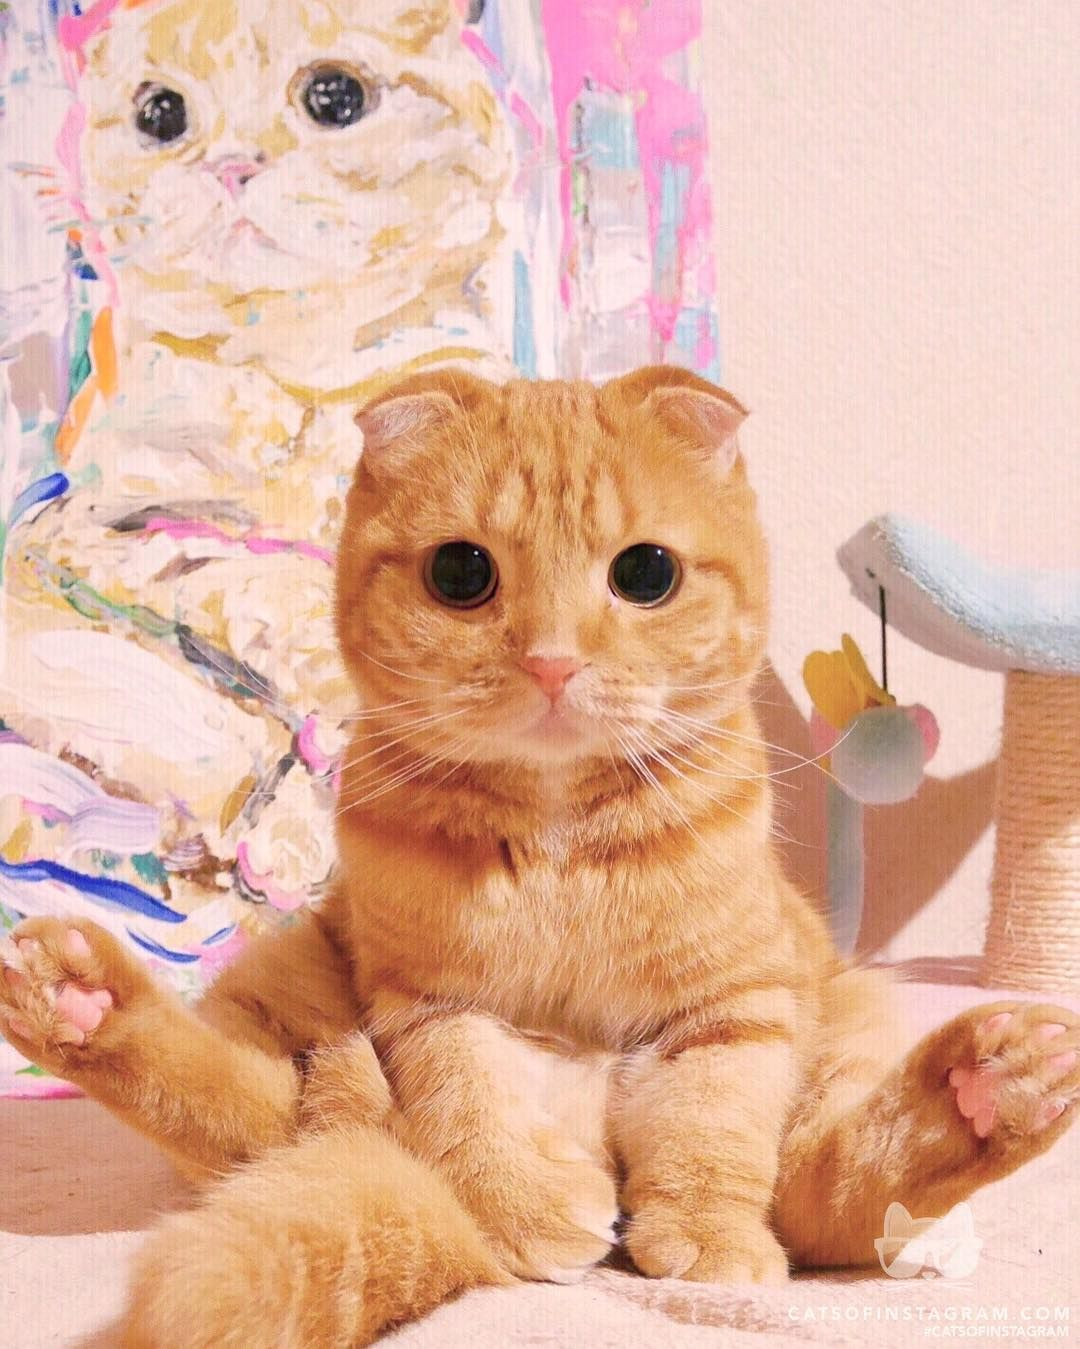 Cats Of Instagram On Instagram From Ashmiemu Same Pose Catsofinstagram Cute Cat Gif Funny Cat Videos Cats